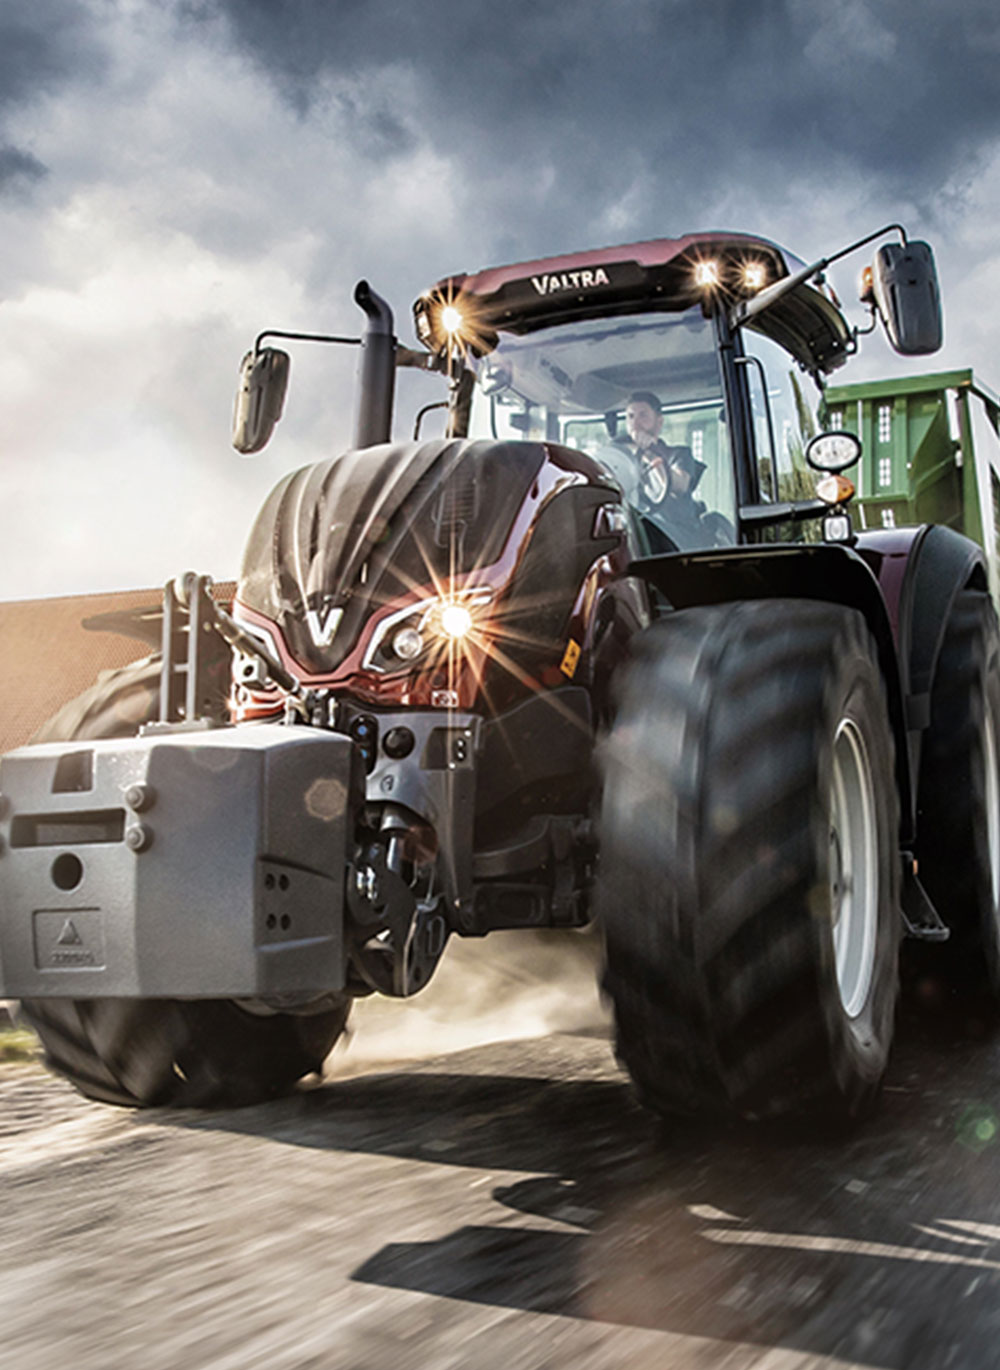 about-valtra